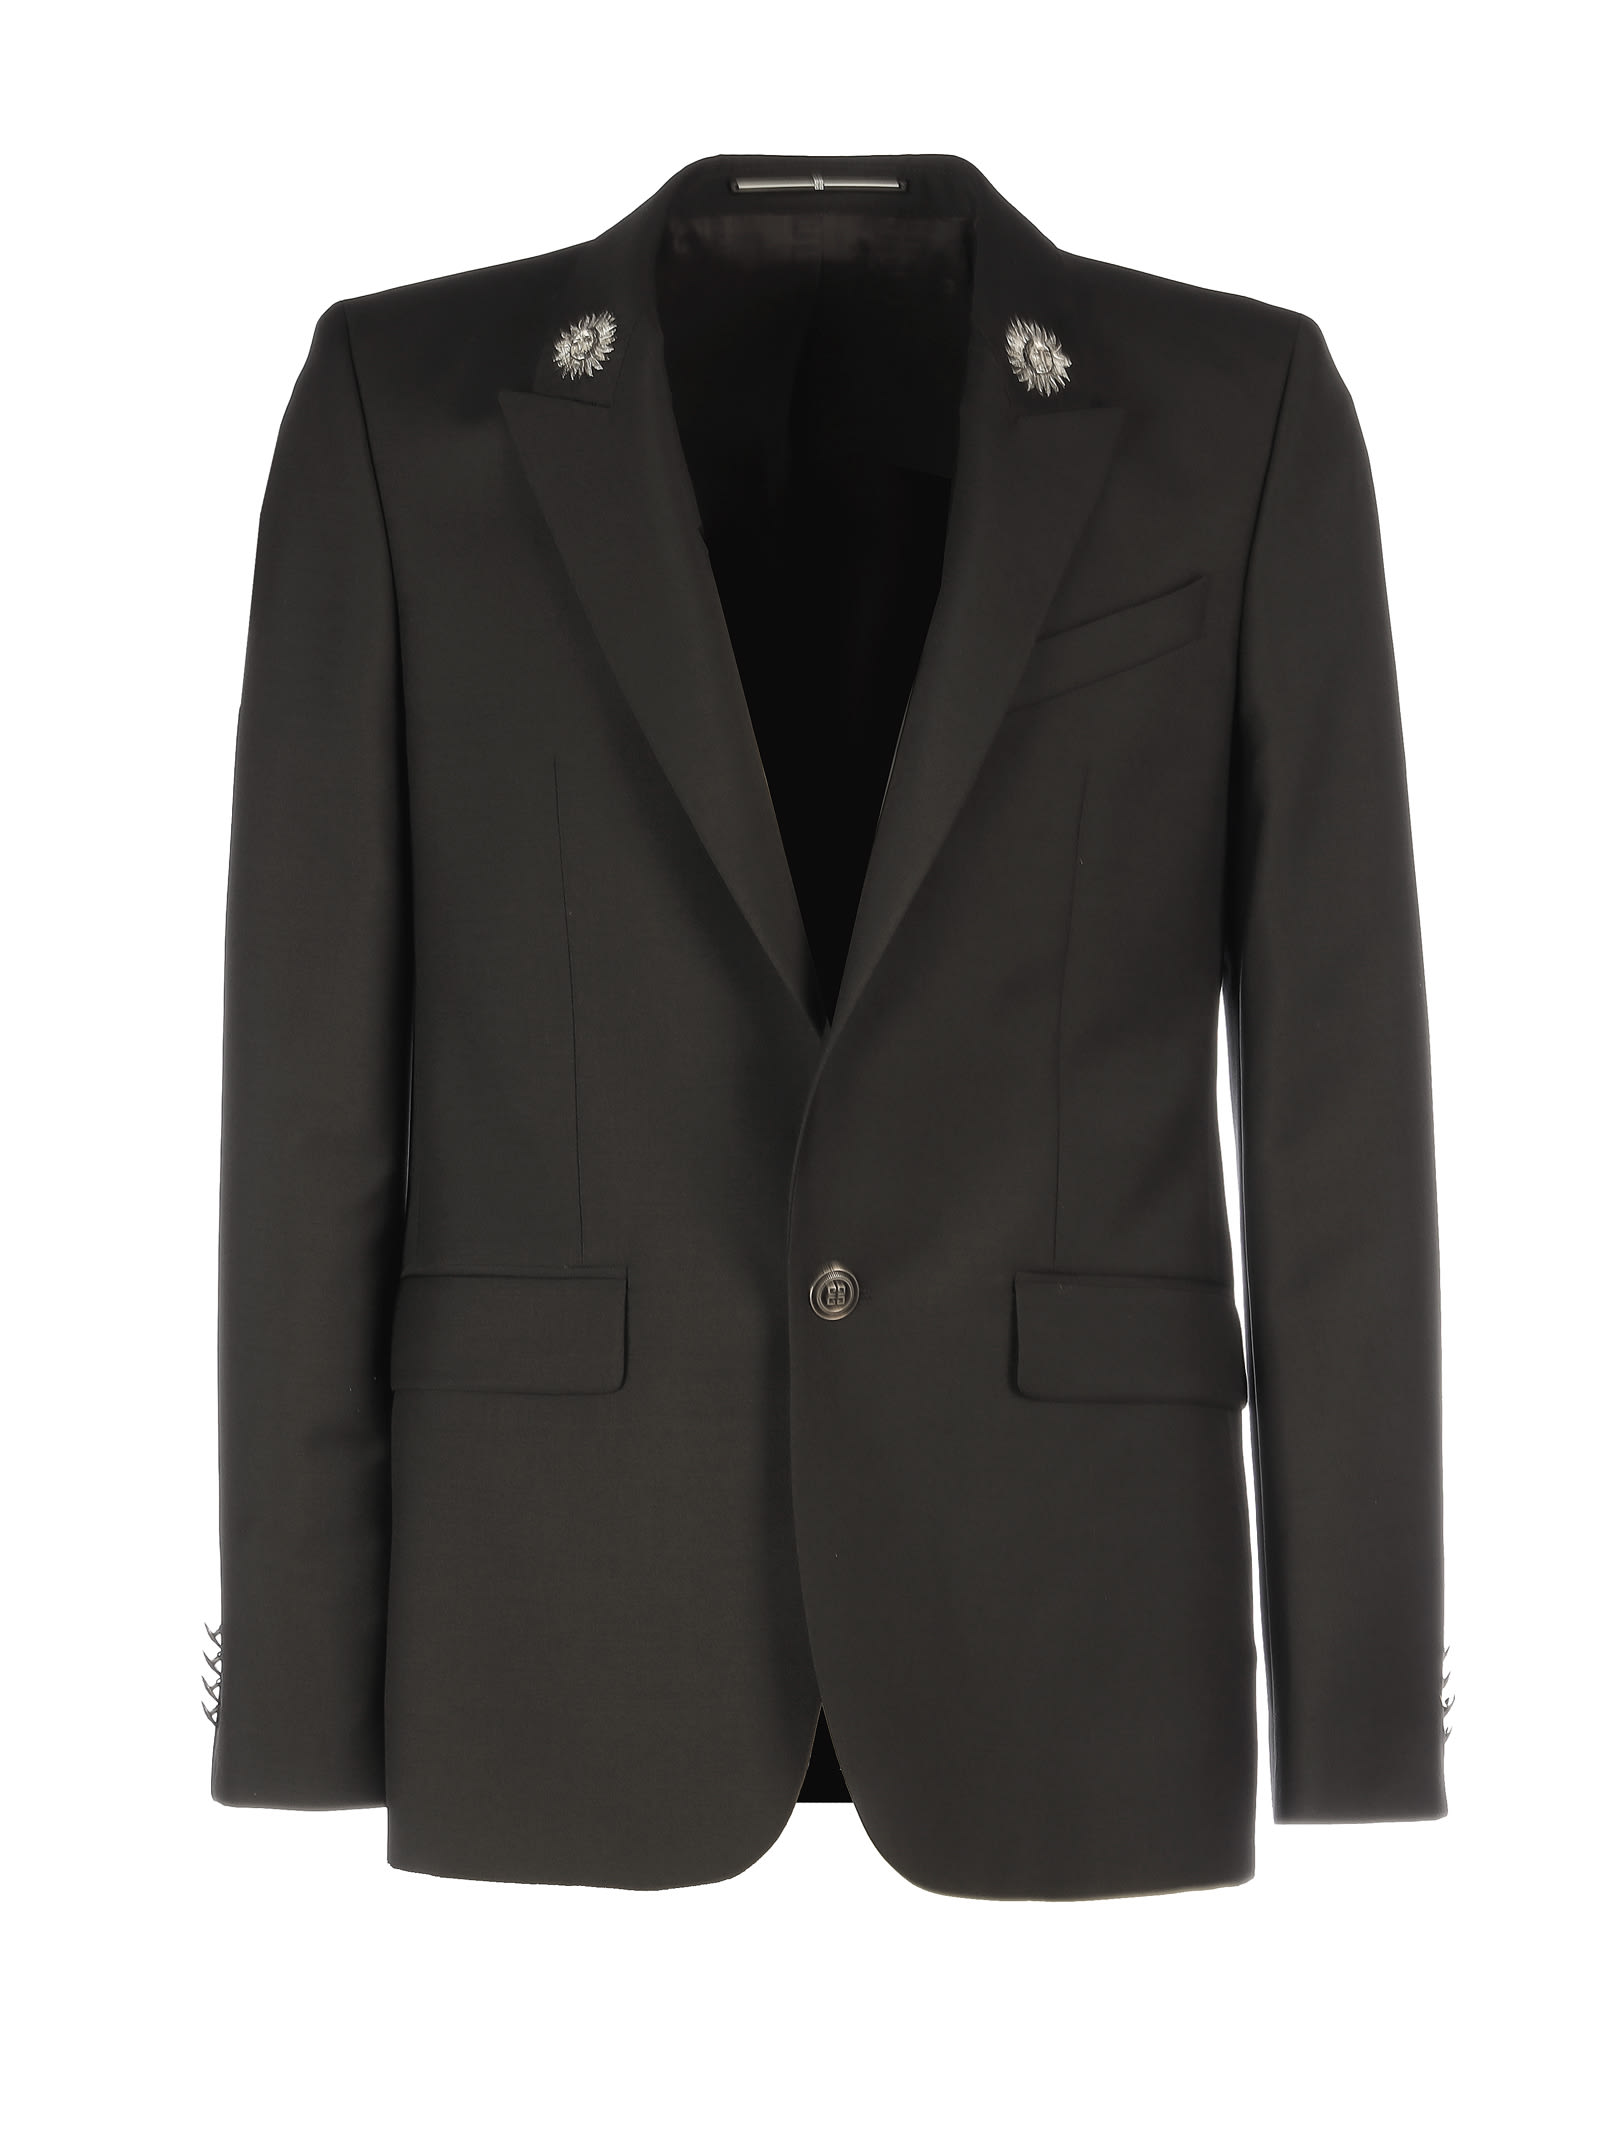 Givenchy Jacket With Sun Details In Black